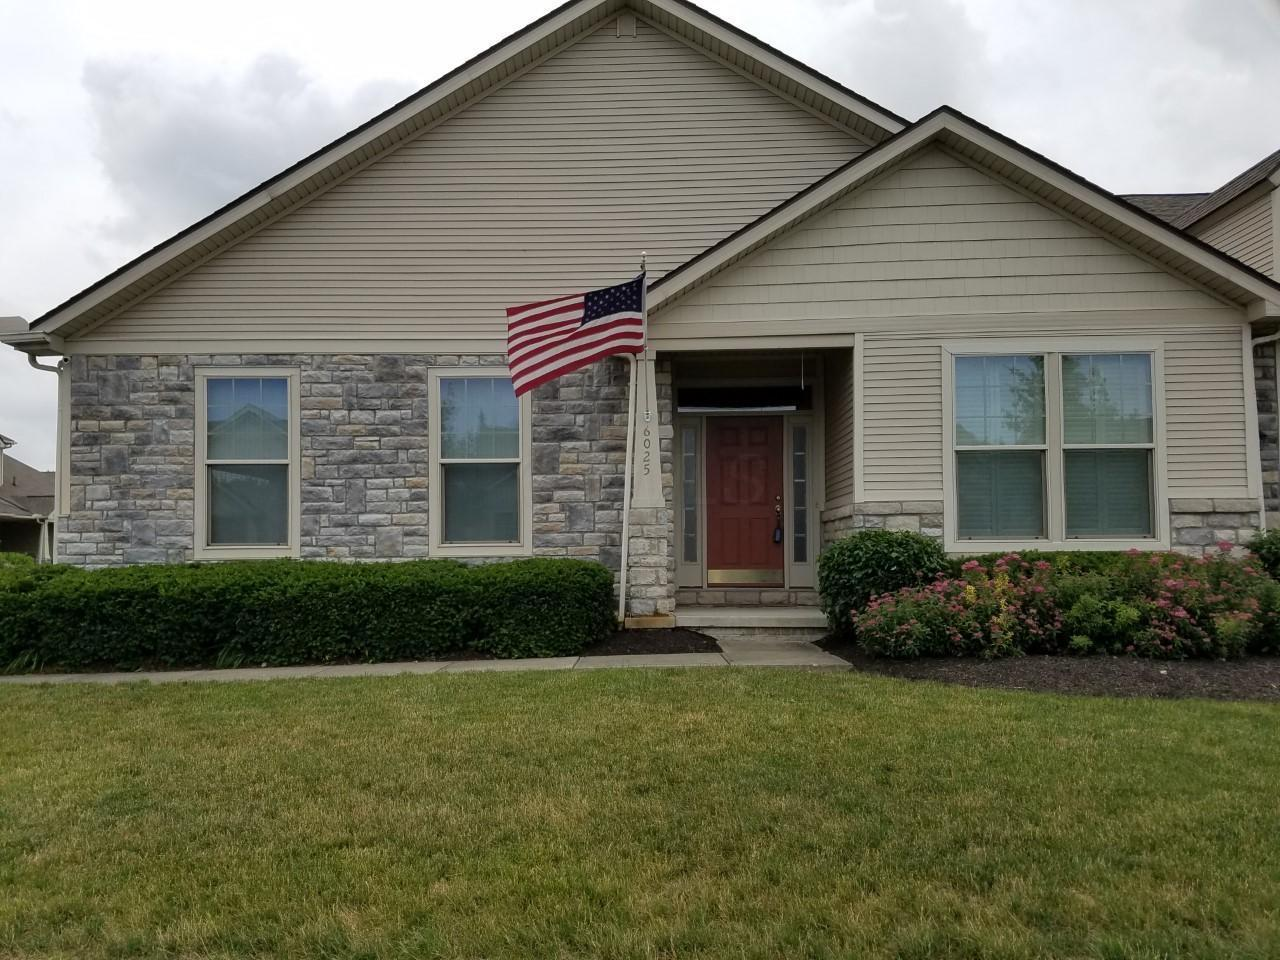 6025 Coventry Bend Drive, Hilliard, Ohio 43026, 2 Bedrooms Bedrooms, ,3 BathroomsBathrooms,Residential,For Sale,Coventry Bend,220020965